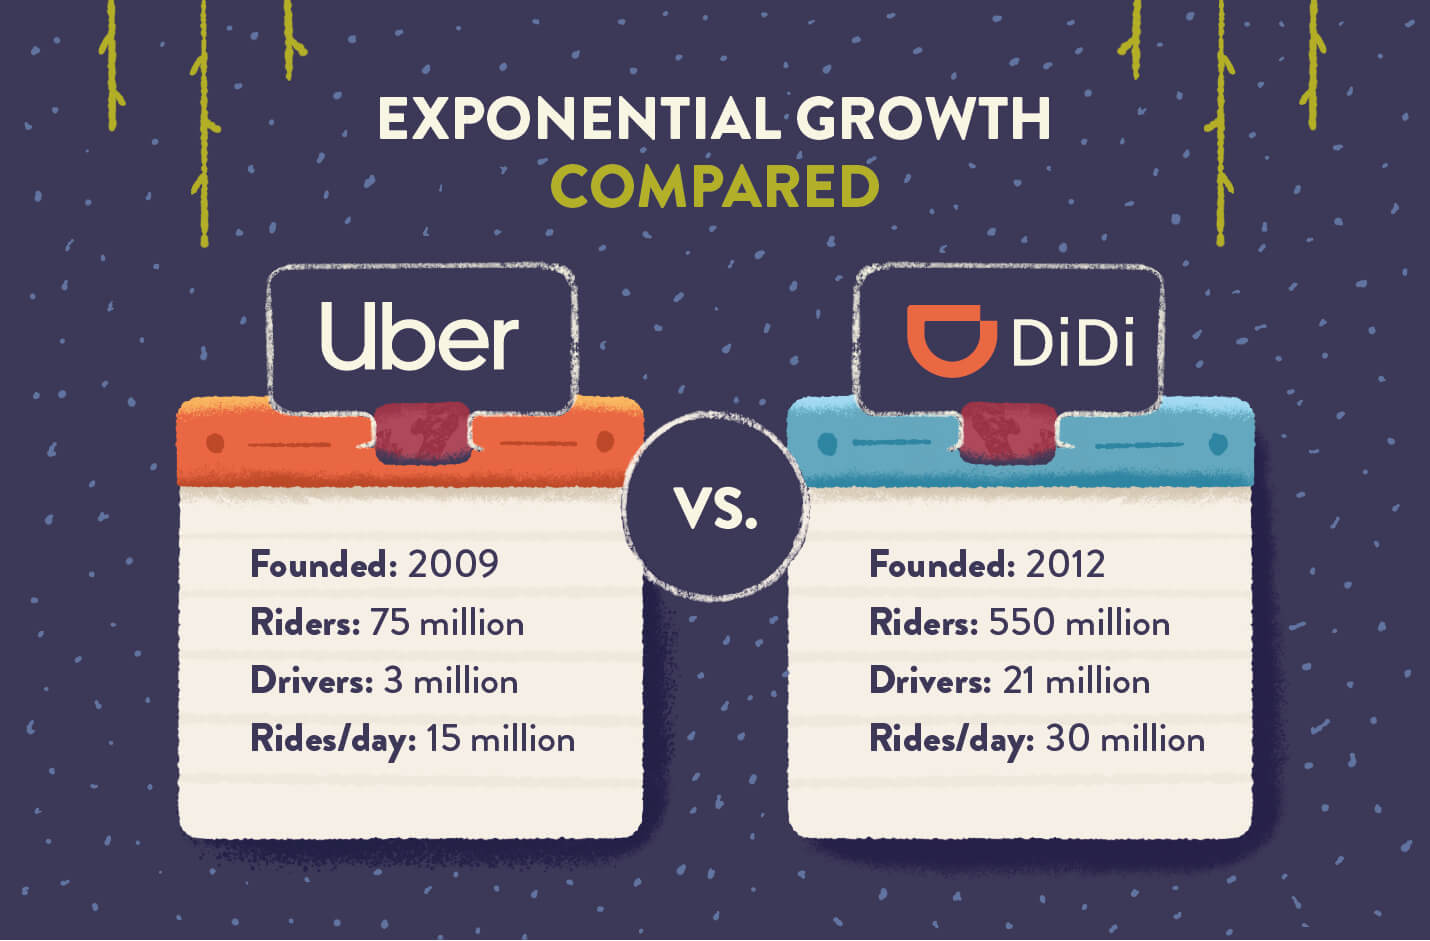 exponential growth comparison between China's DiDi and US Uber on how much these companies have grown